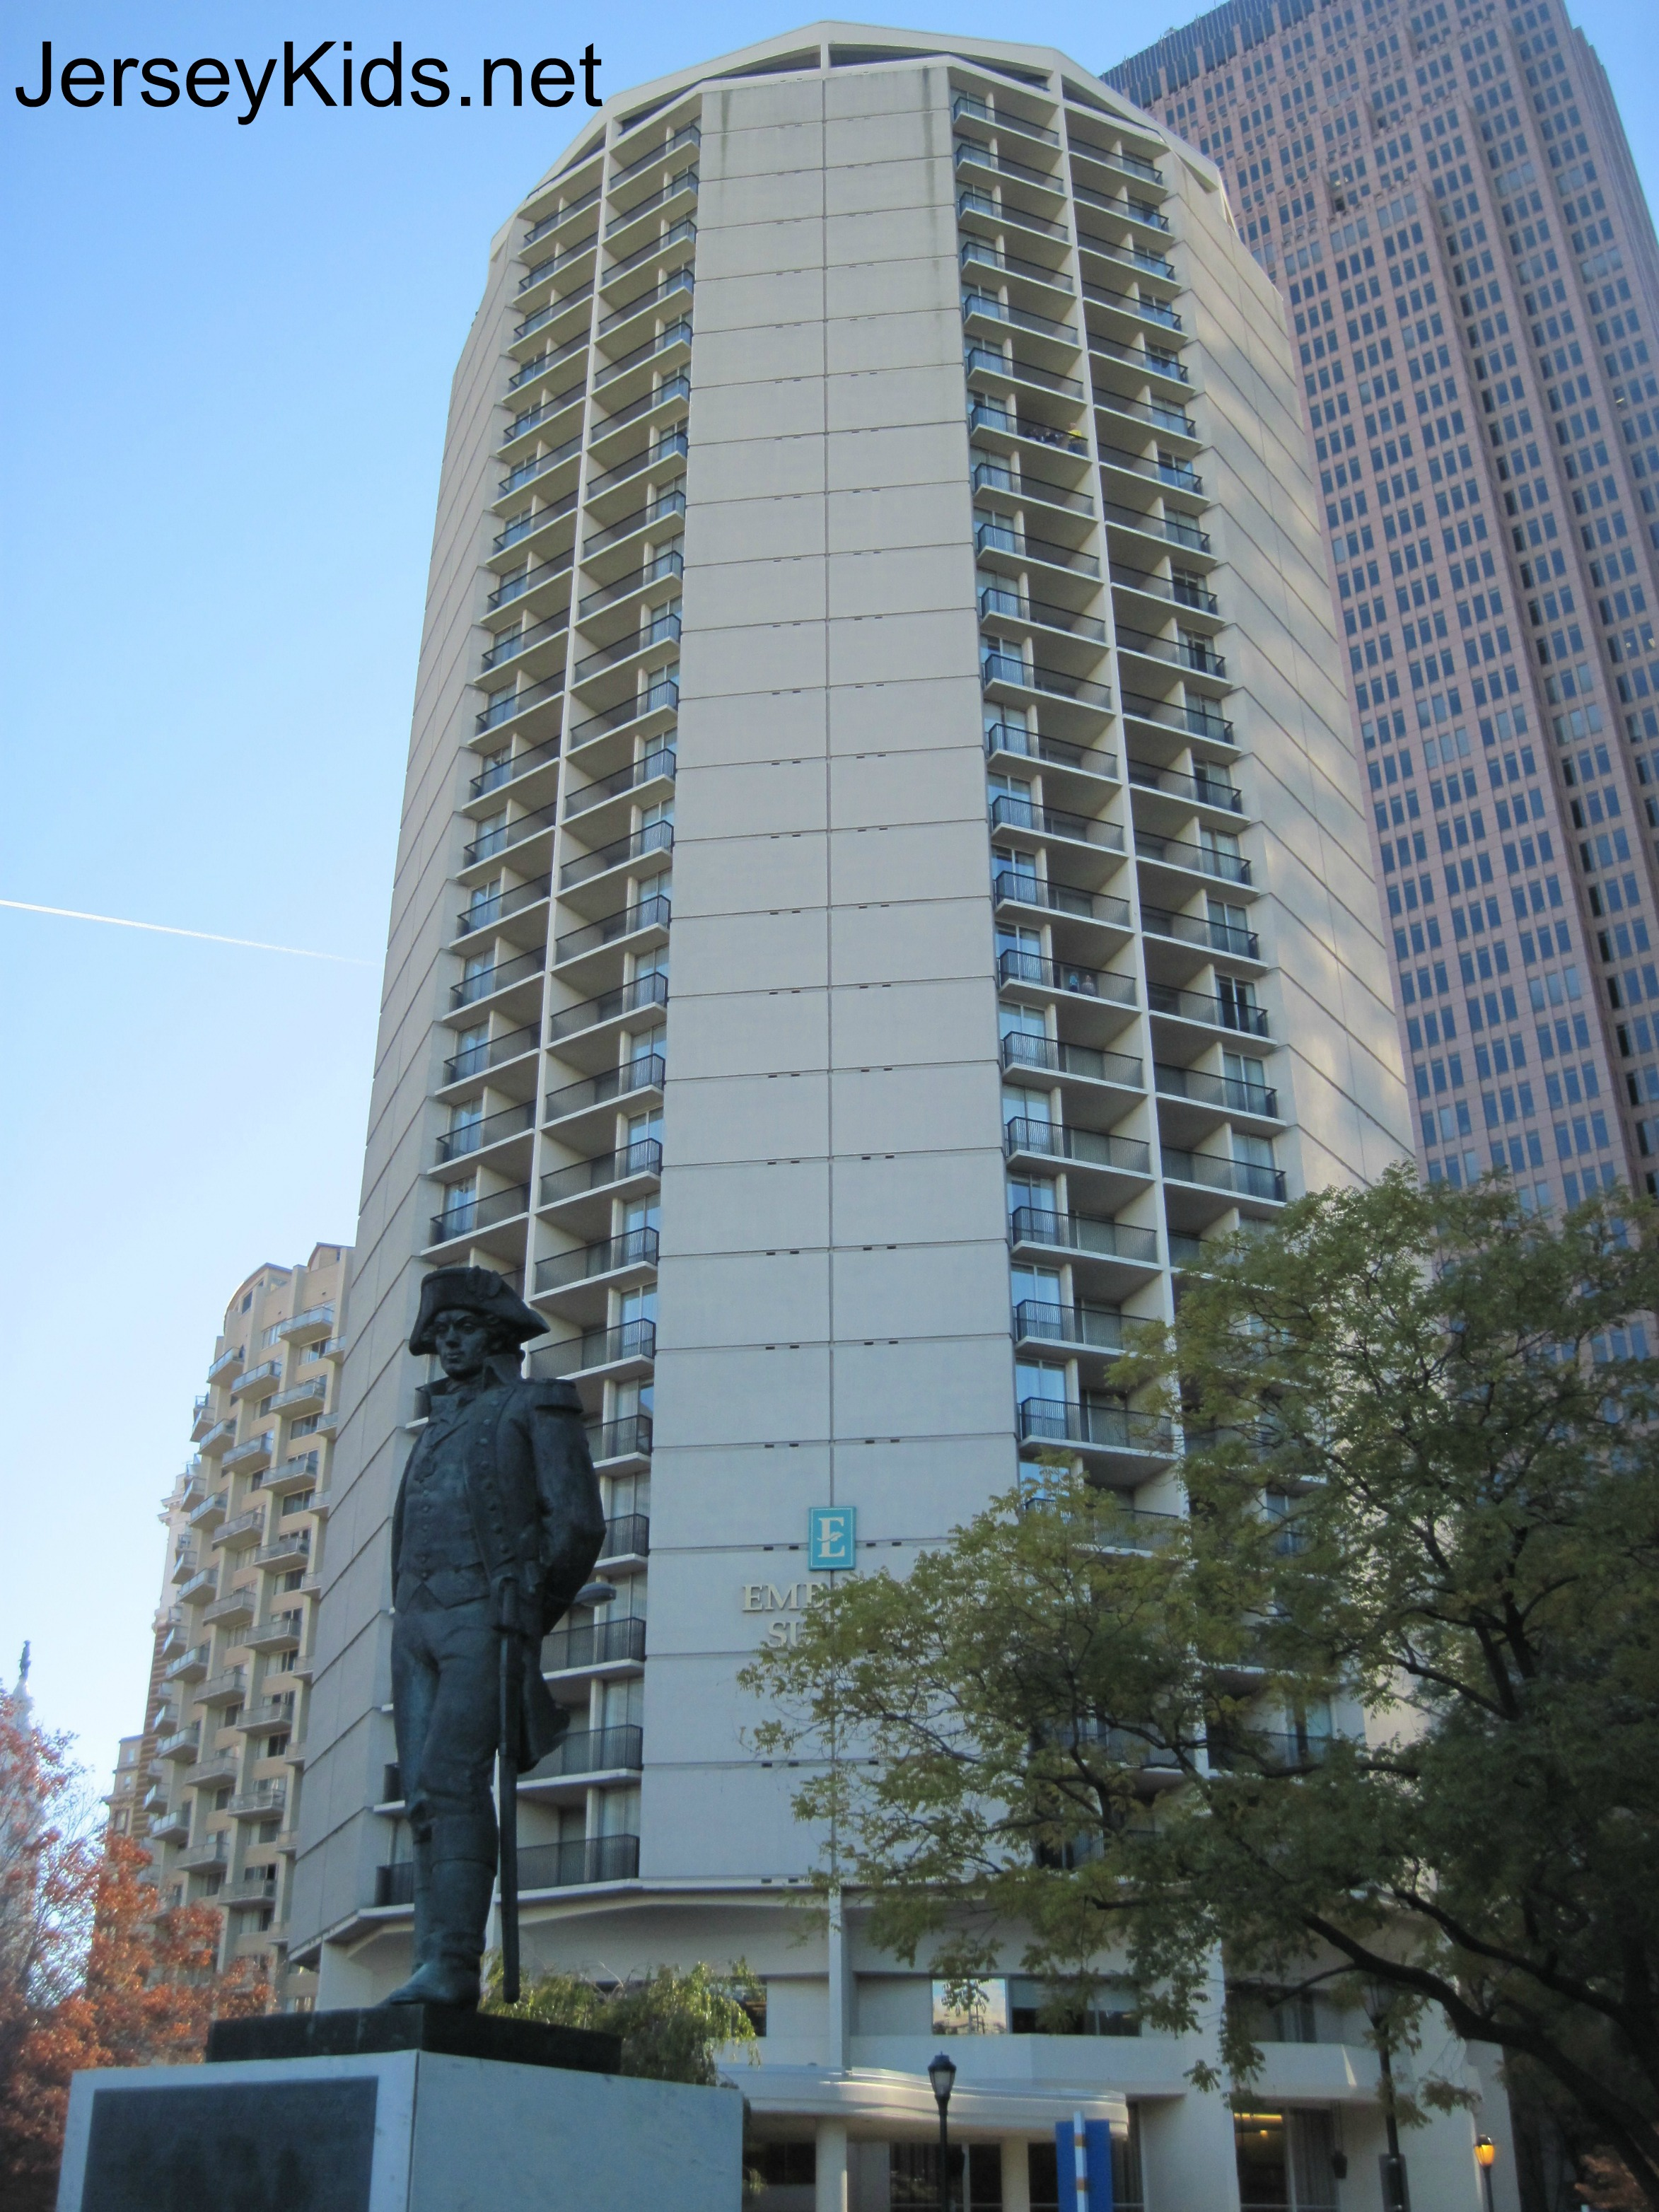 The Hotel Is On Ben Franklin Parkway In Close Walking Distance To Everything We Did Trip It S Insute Kids Hands